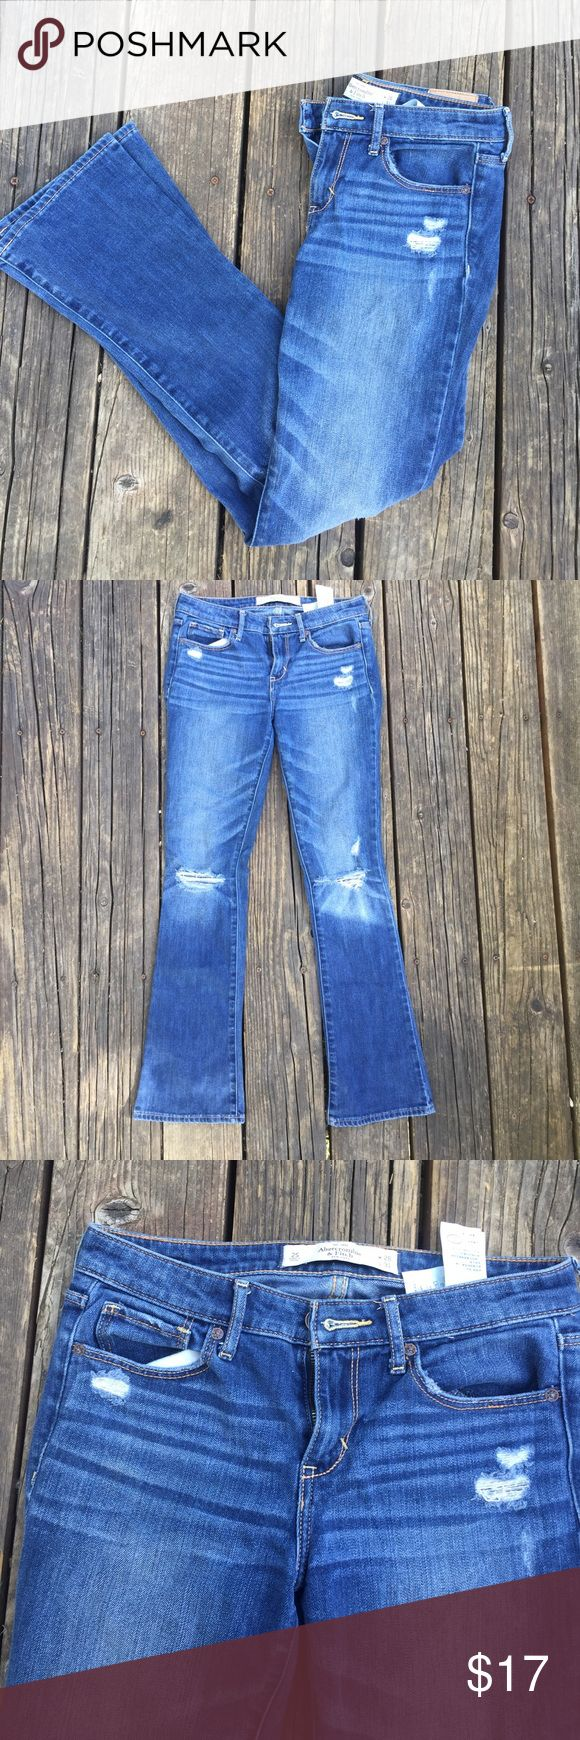 Abercrombie and Fitch jeans Abercrombie and Fitch skinny boot jeans with holes. Super cute and good condition! Only worn a couple times ❤️ Abercrombie & Fitch Jeans